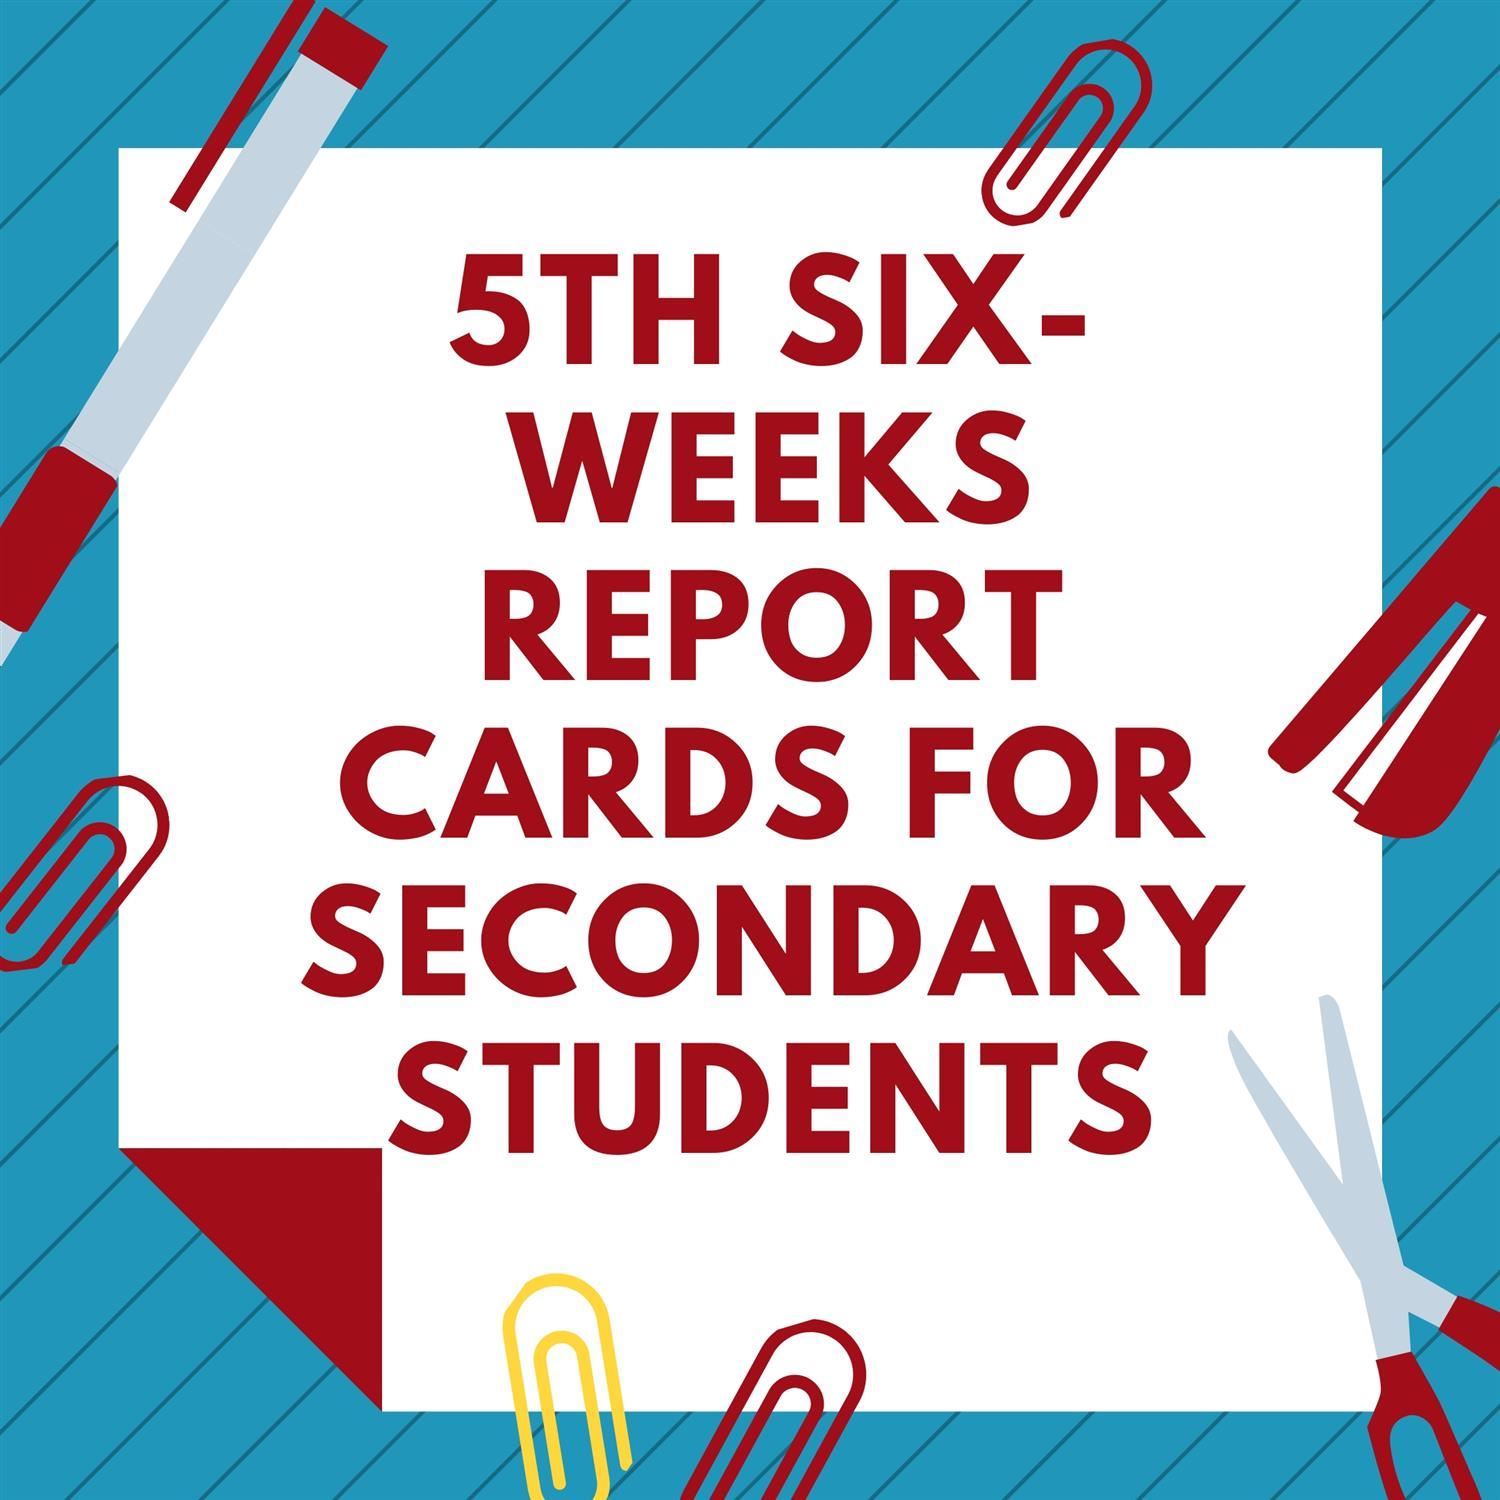 5th Six-weeks Report Cards for Secondary Students